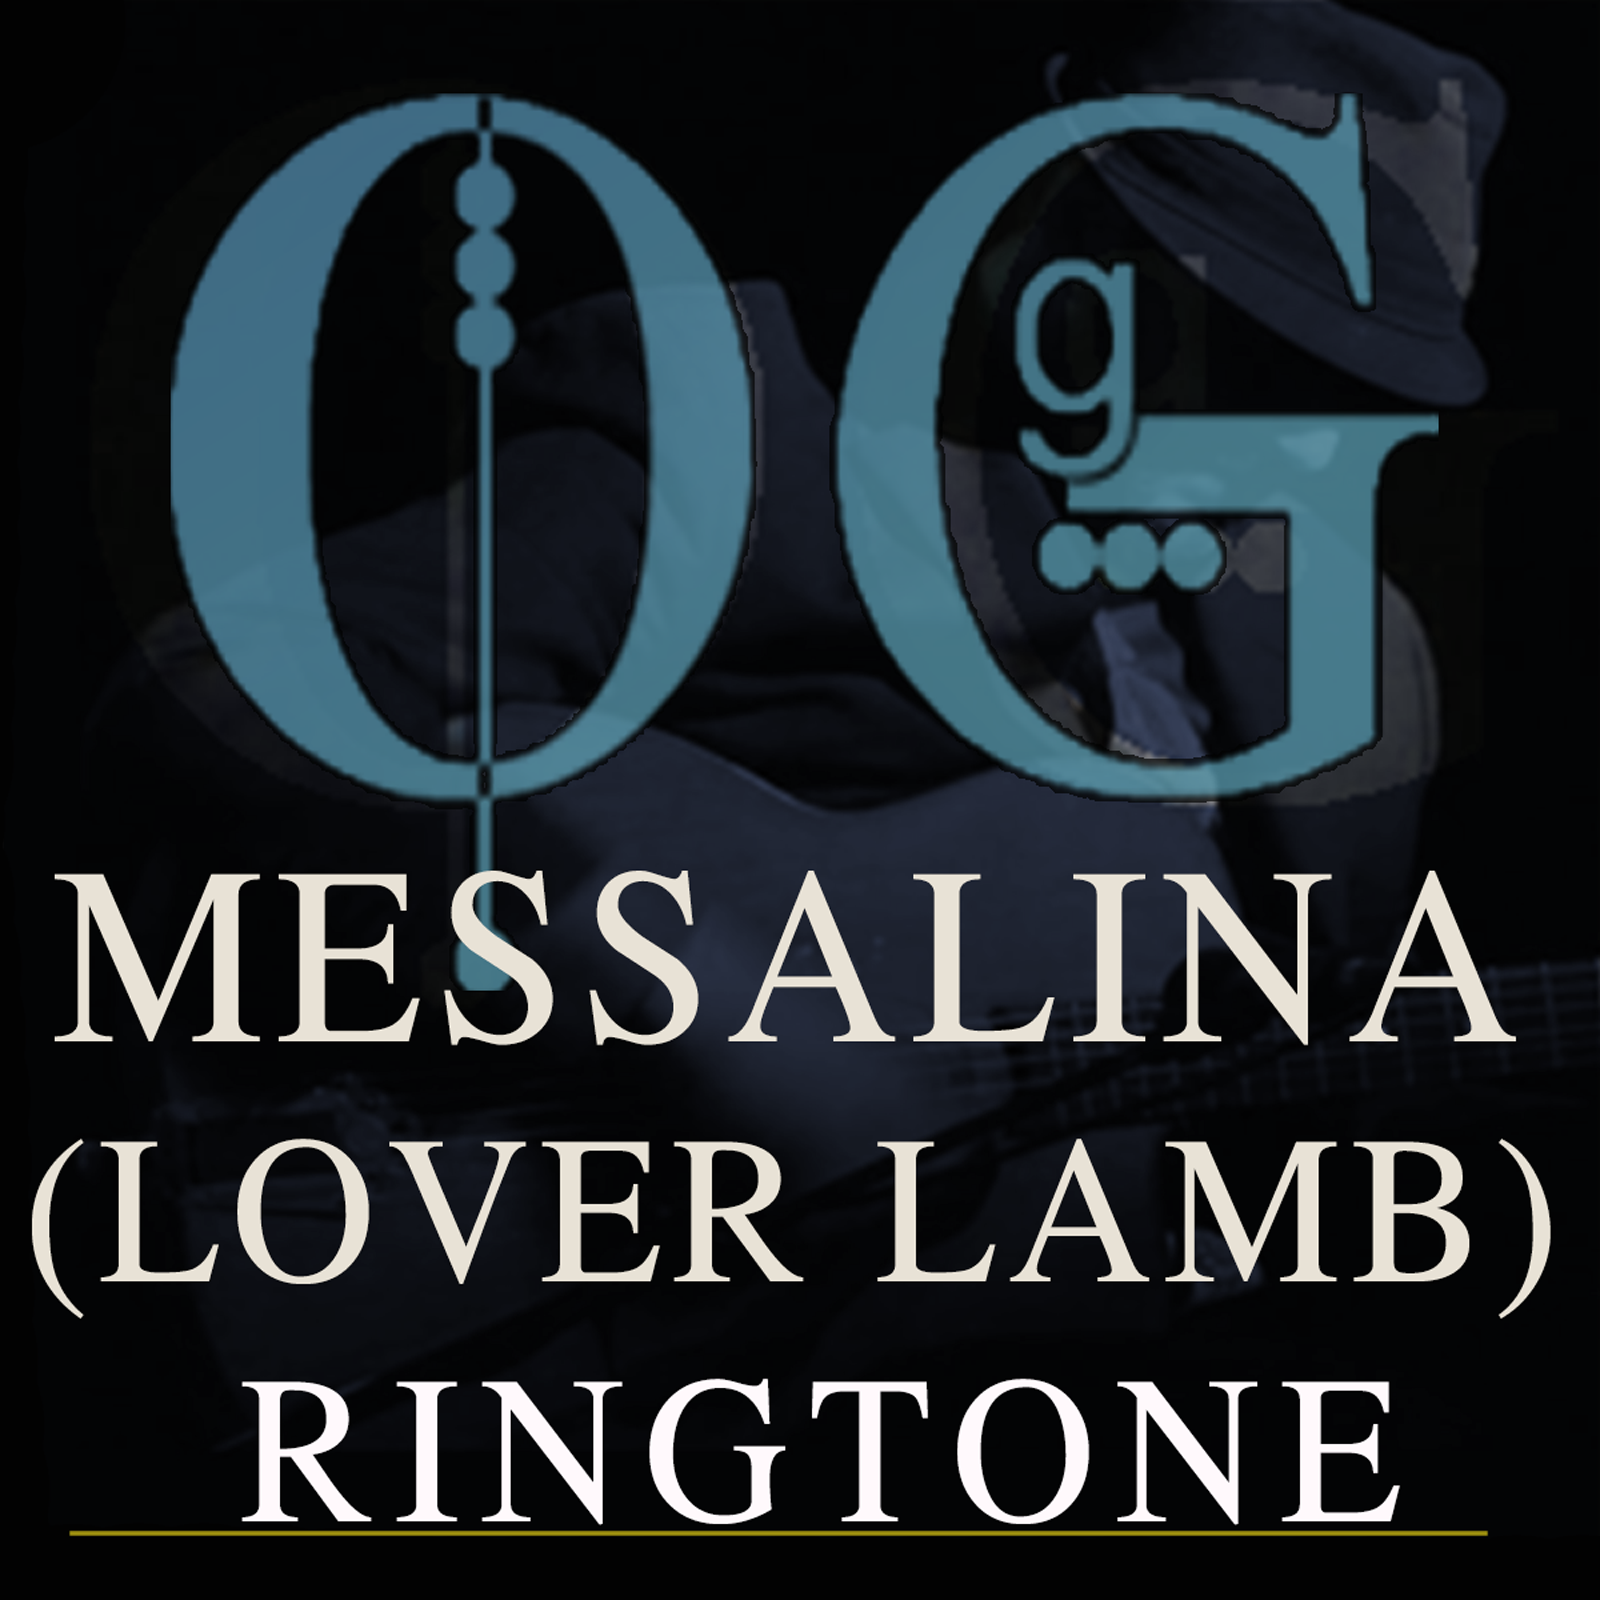 FREE MESSALINA RINGTONE